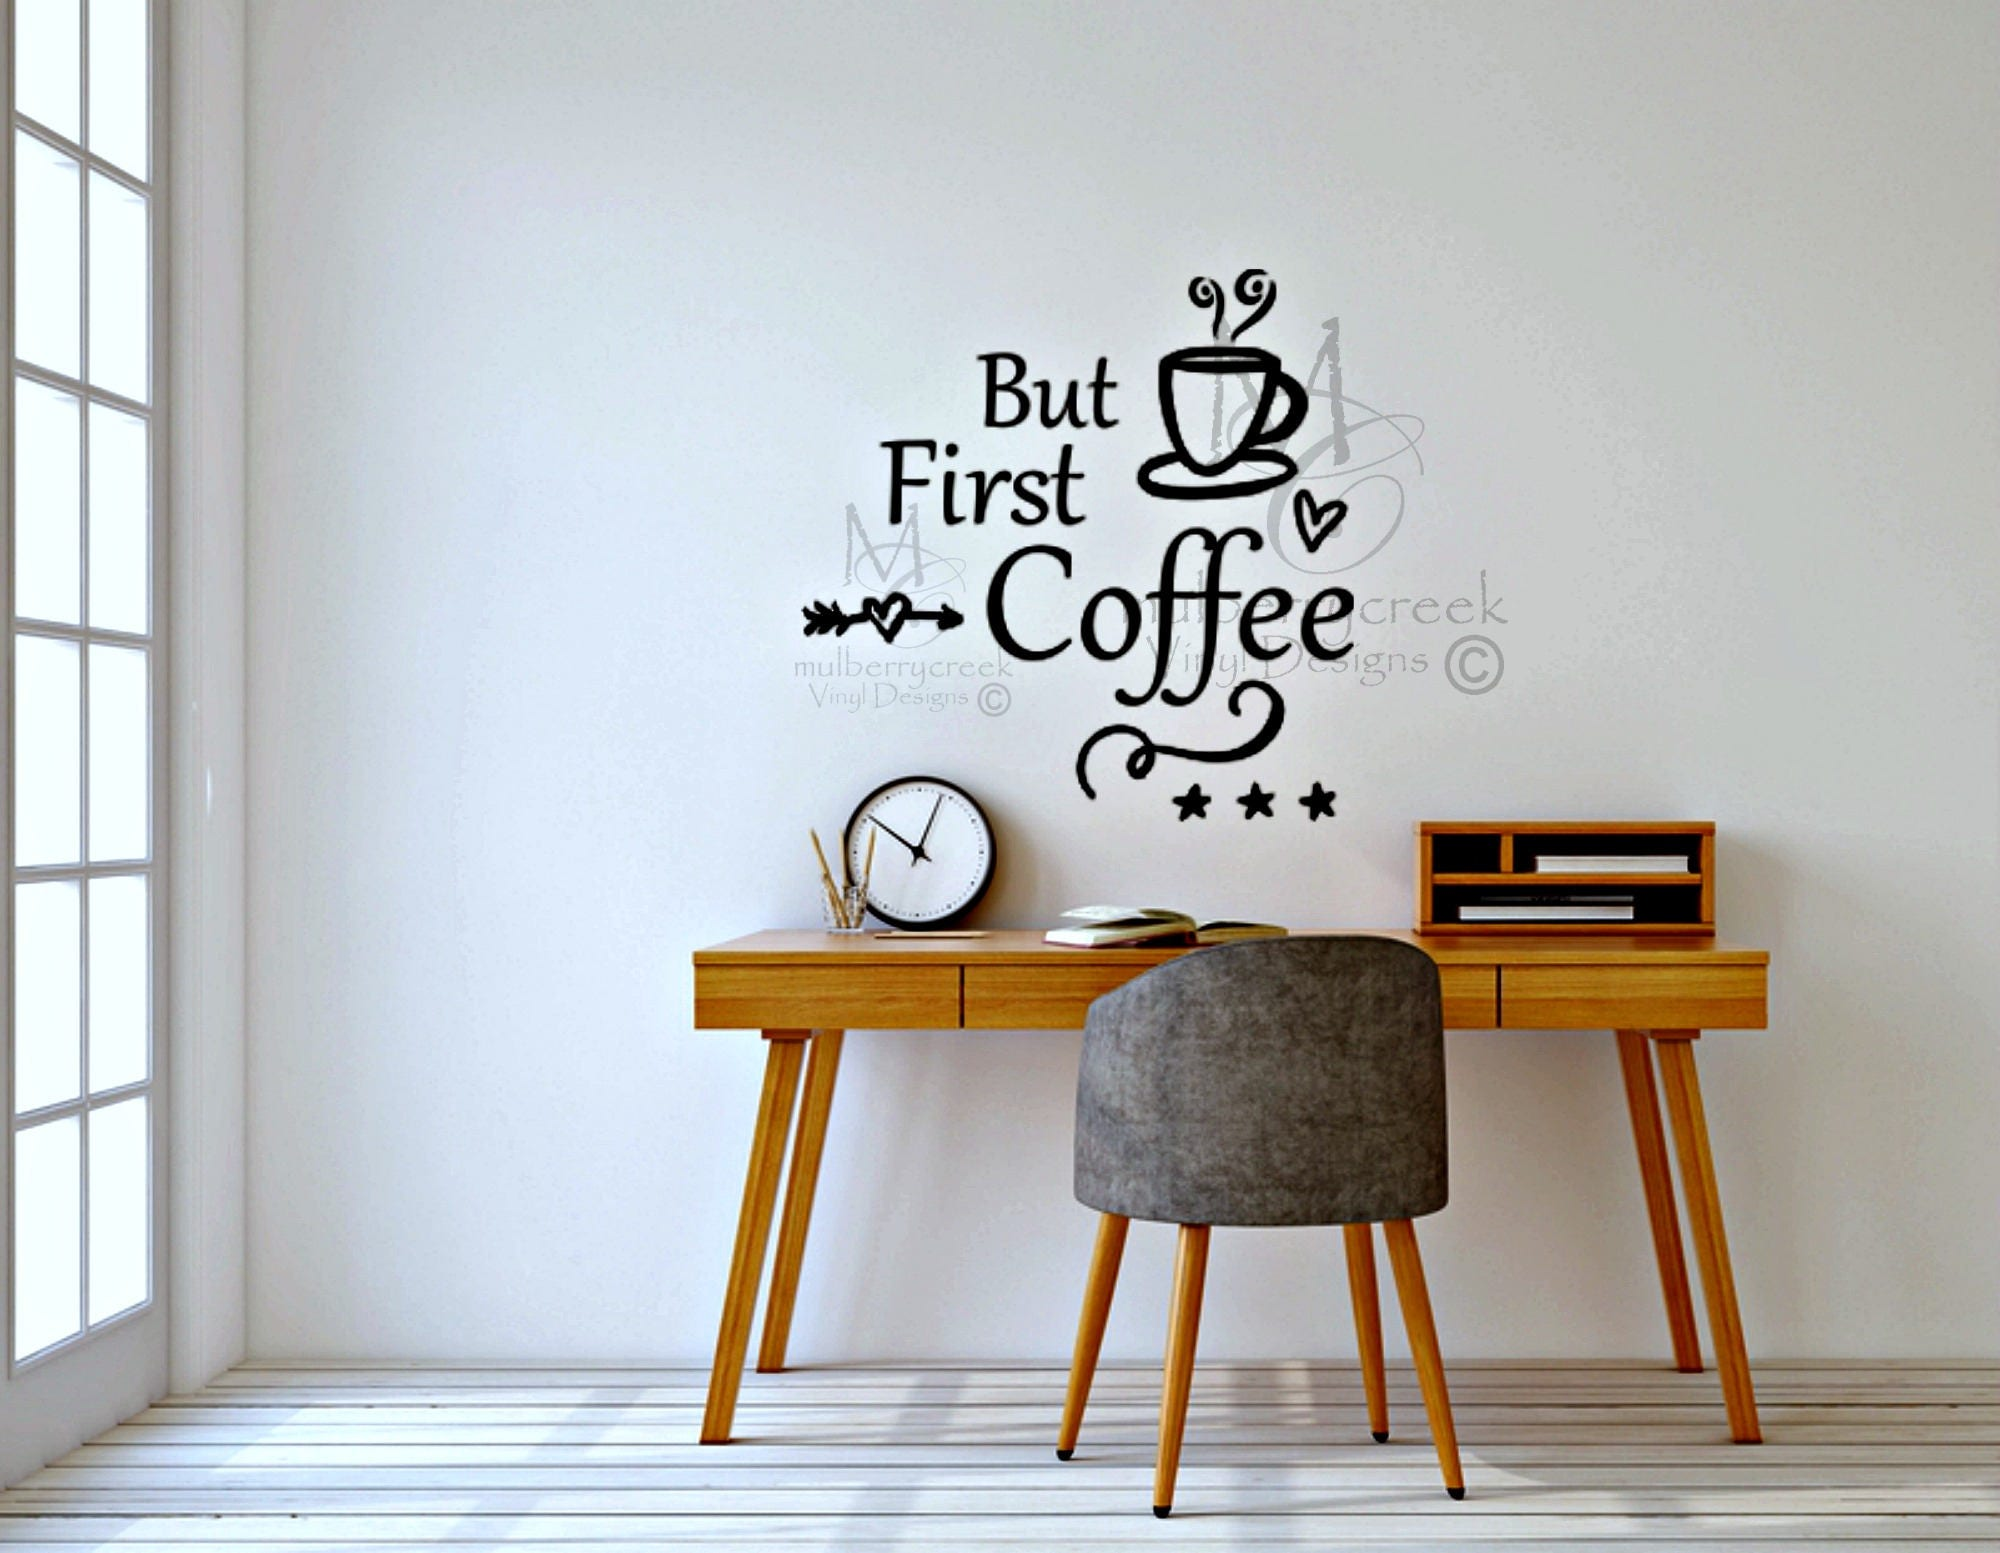 But First Coffee Sign But First Coffee Decor Coffee Vinyl - Custom vinyl wall decals coffee